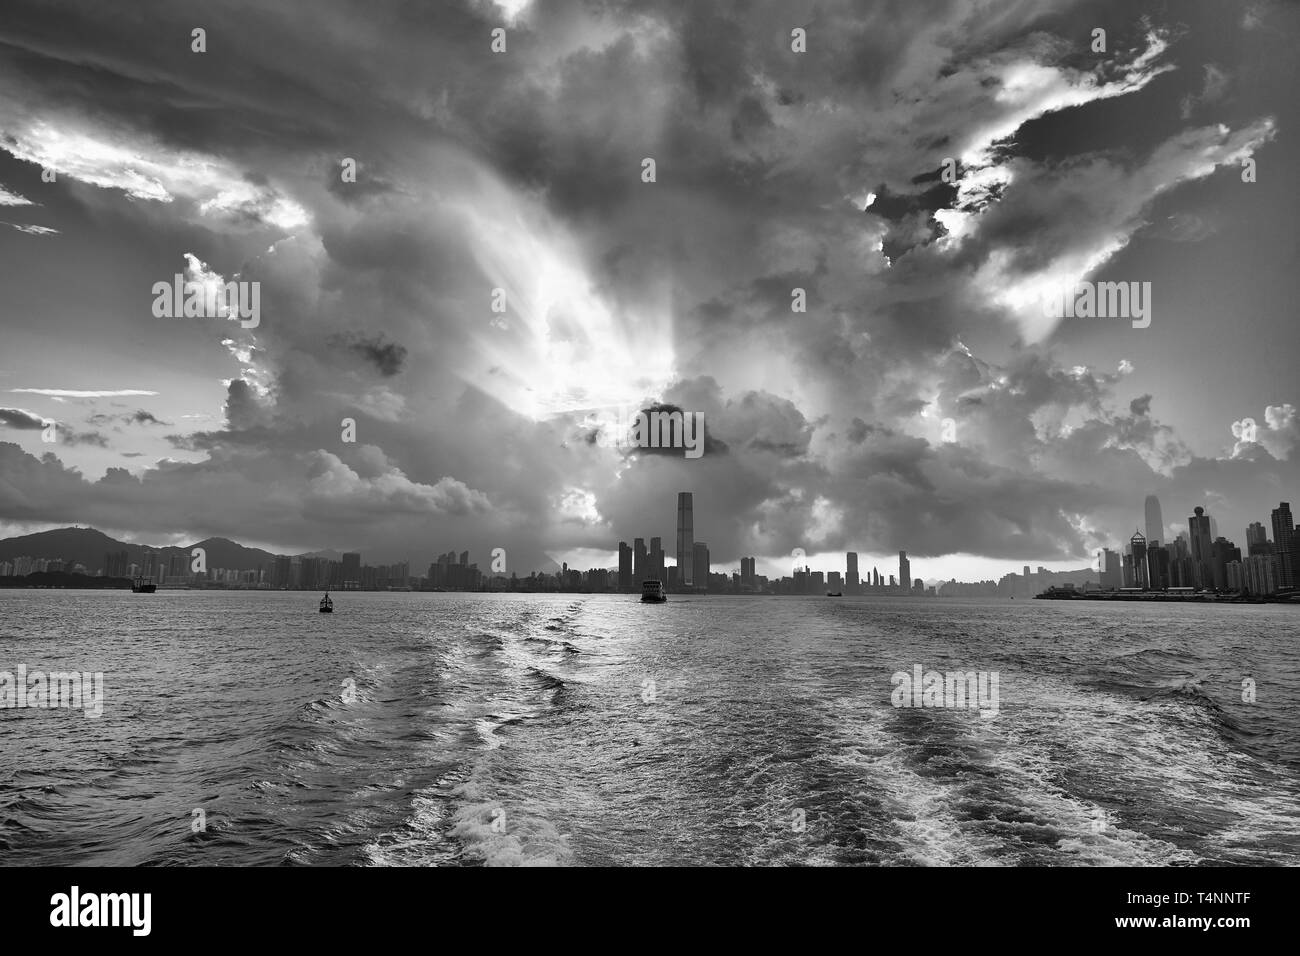 Black And White Photo Of A Giant Tropical Storm Cloud (Cumulonimbus), Illuminated By The Rising Sun, Over Victoria Harbour, Hong Kong. - Stock Image